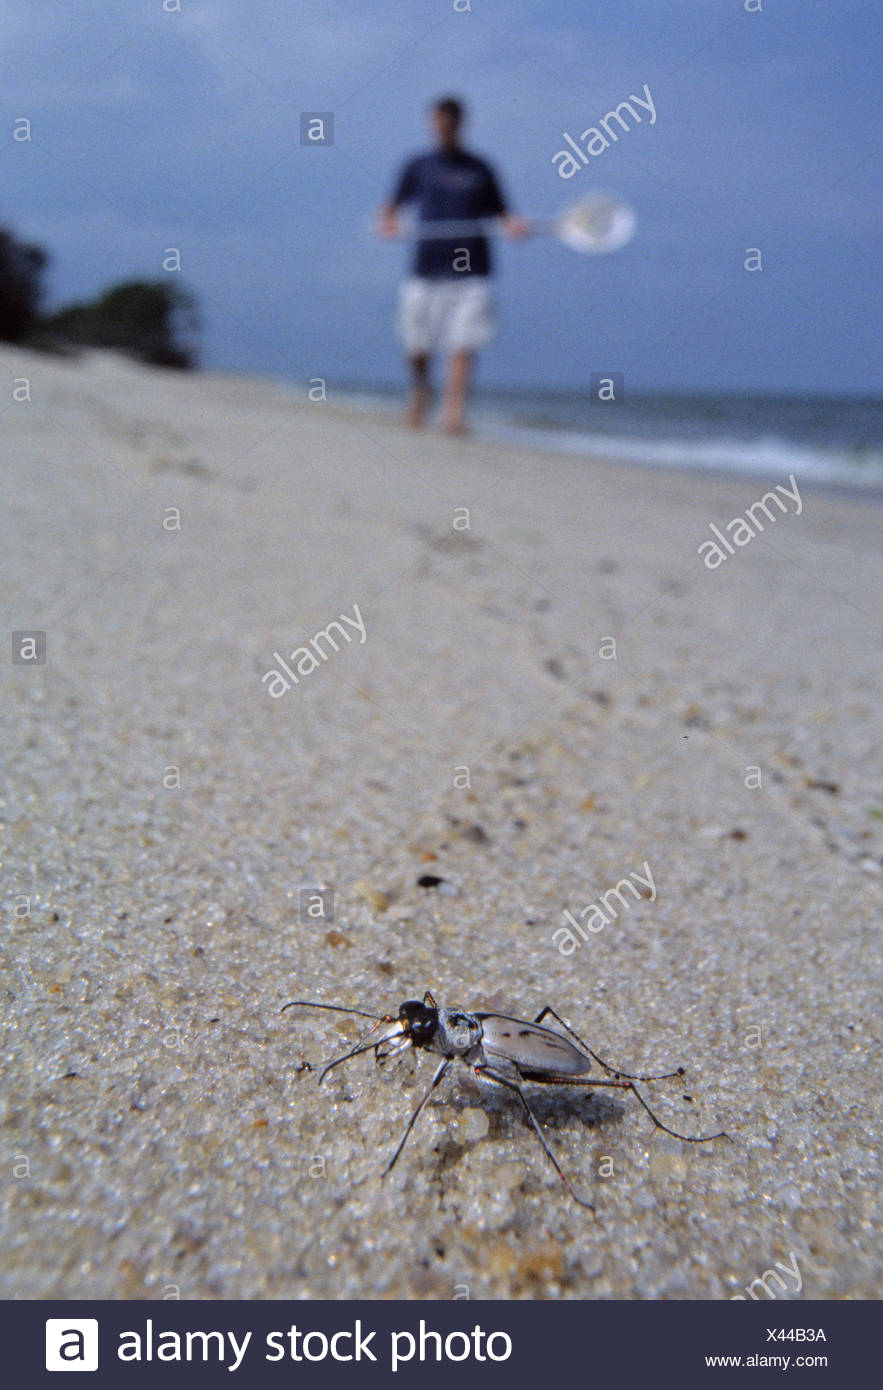 Endangered Tiger Beetle on the beach in Virginia. - Stock Image